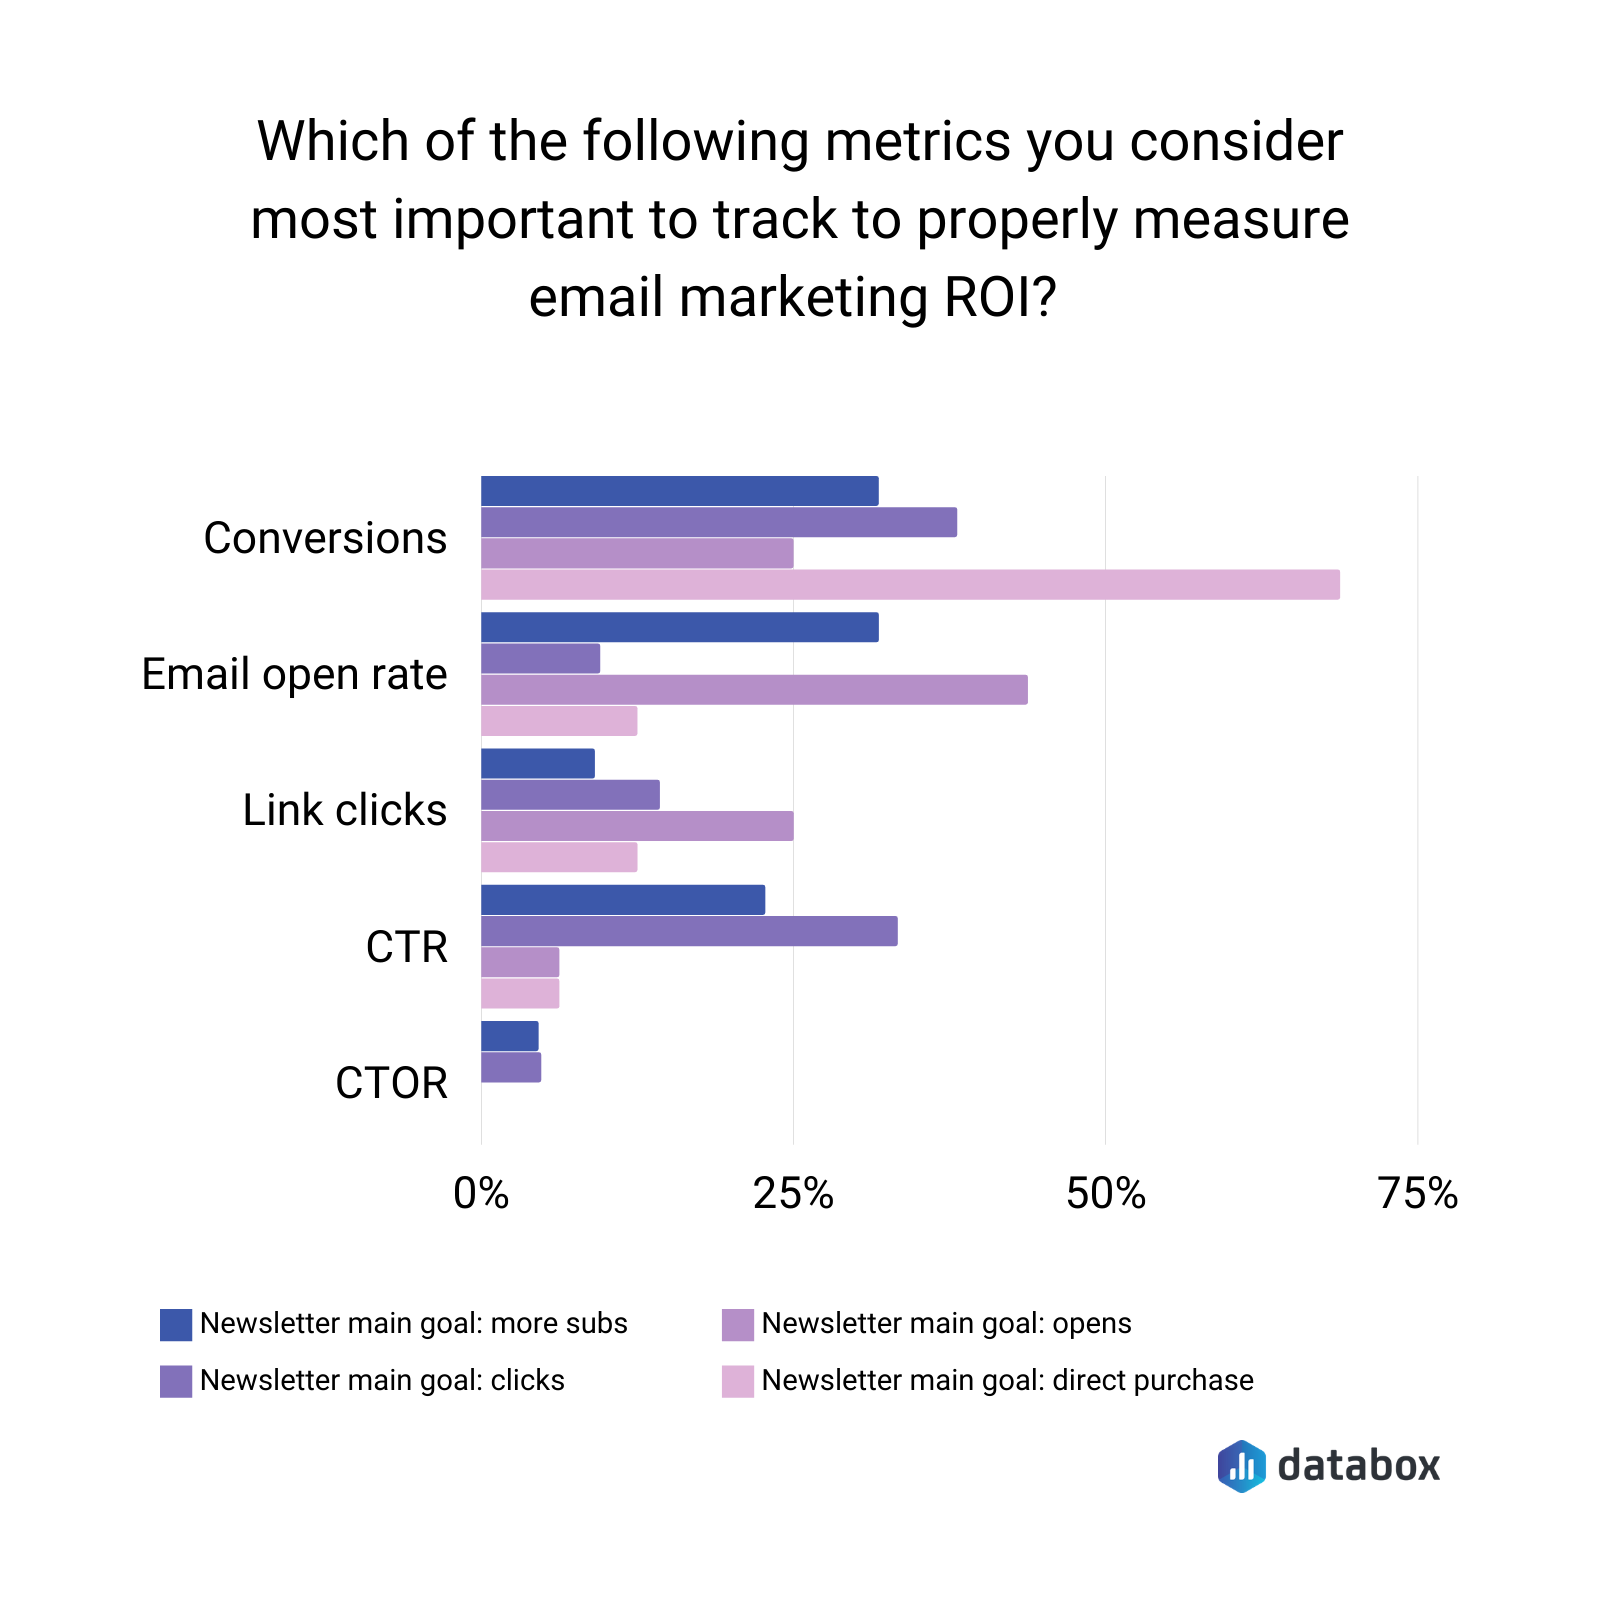 Most important metrics for tracking email marketing ROI